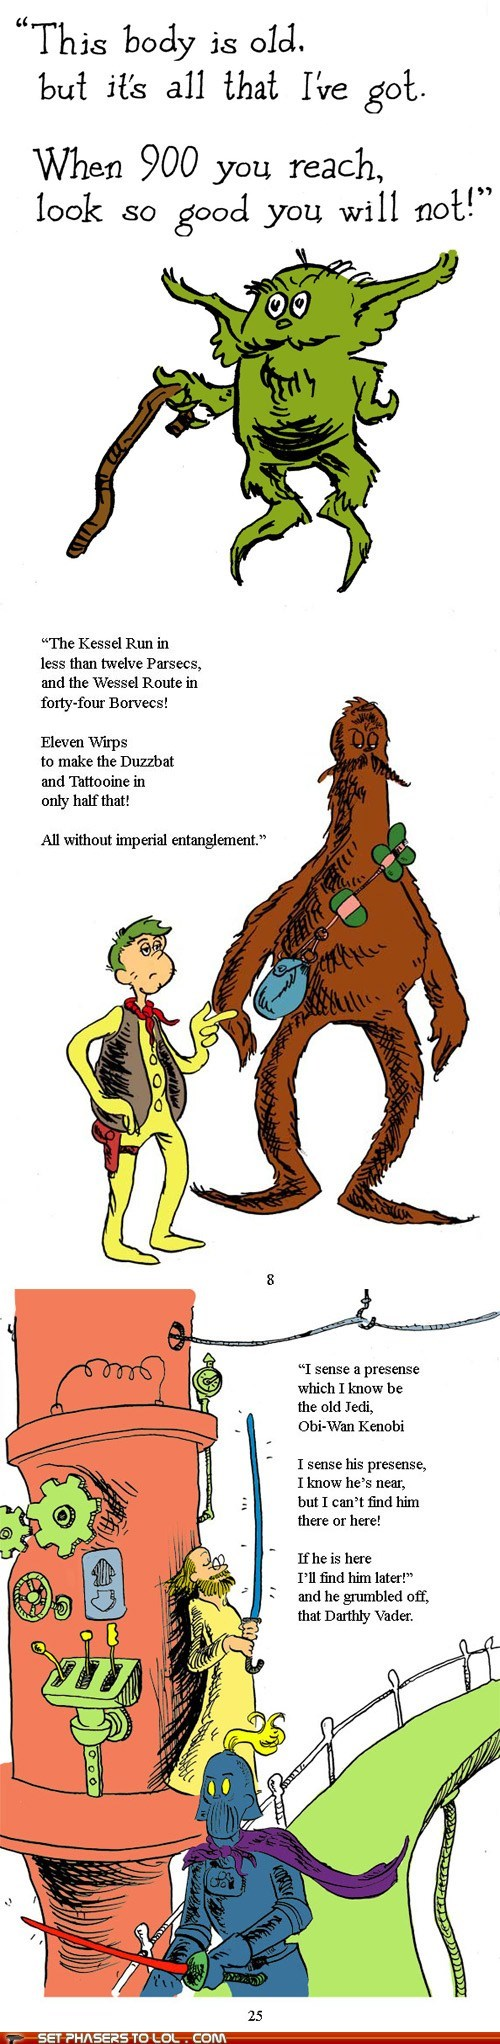 best of the week chewbacca childrens book doctor seuss Han Solo rhyming star wars yoda - 6310847744